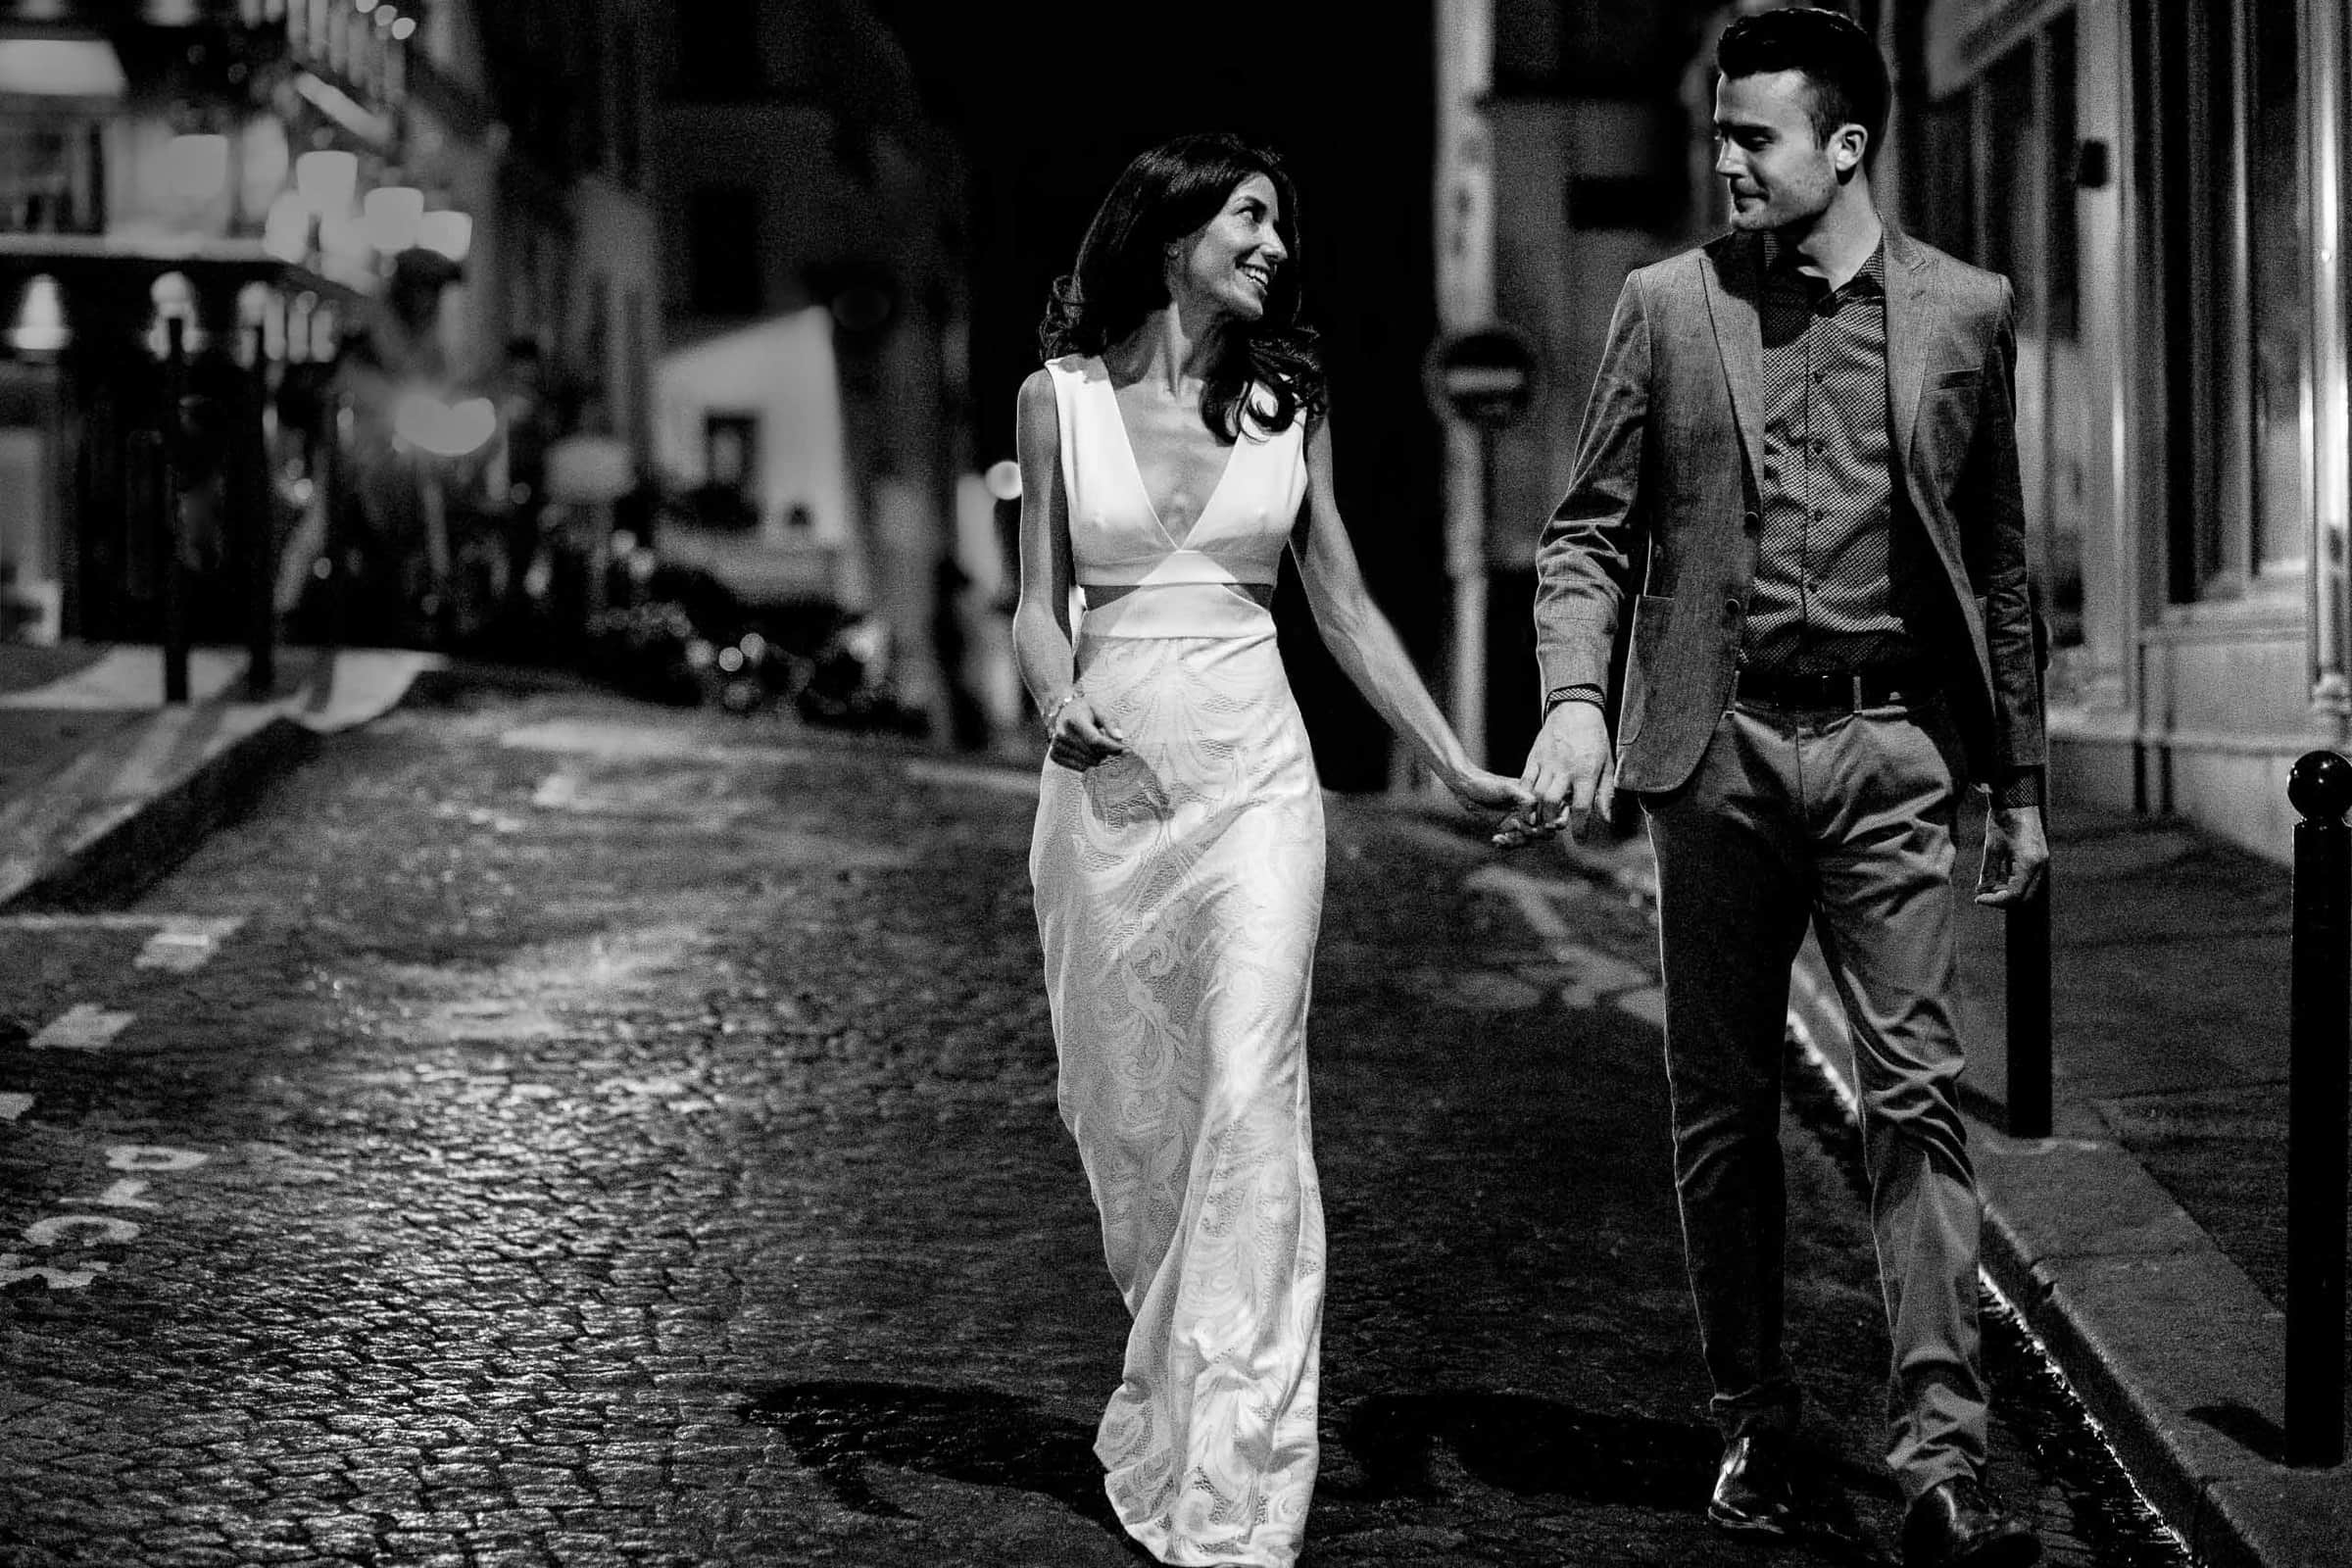 A creative portrait of a couple walking hand and hand in back streets during their Paris engagement photo session